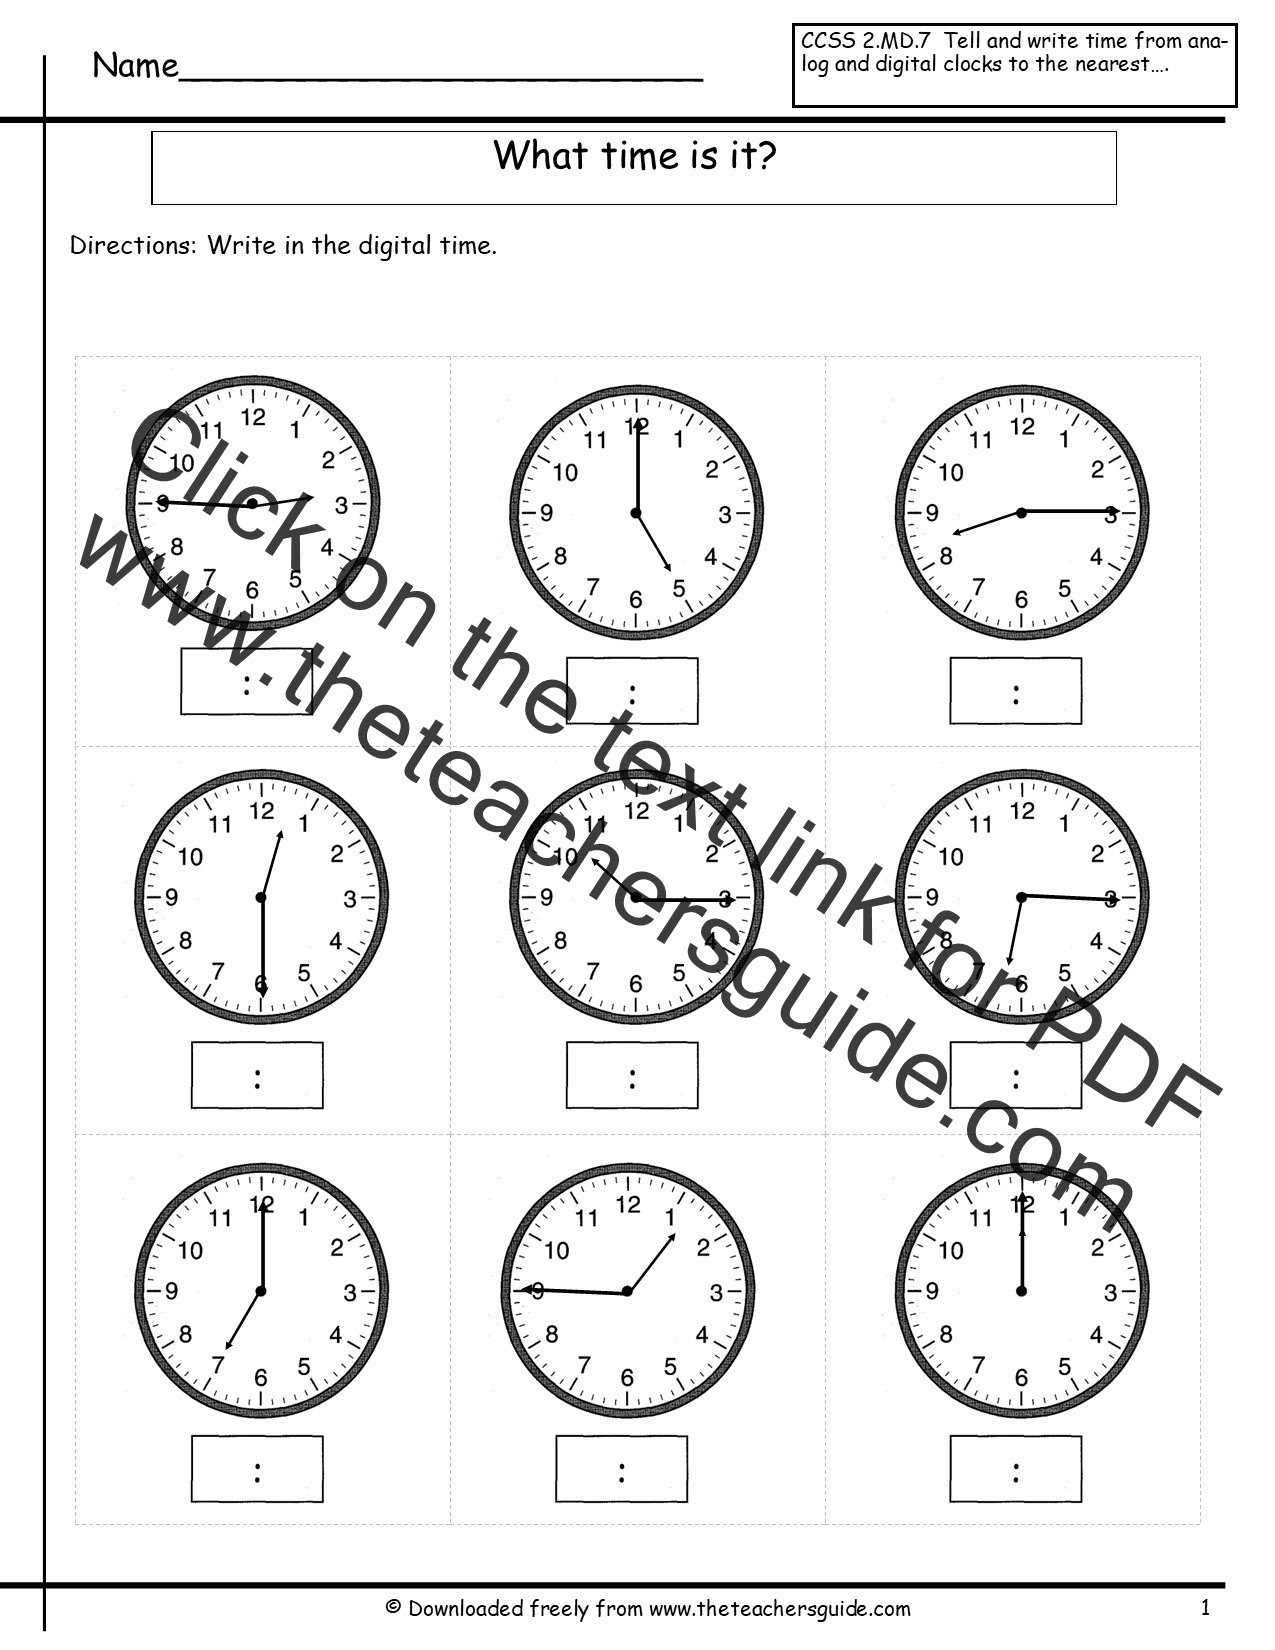 Wood Working: Looking for Digital clock lesson plans